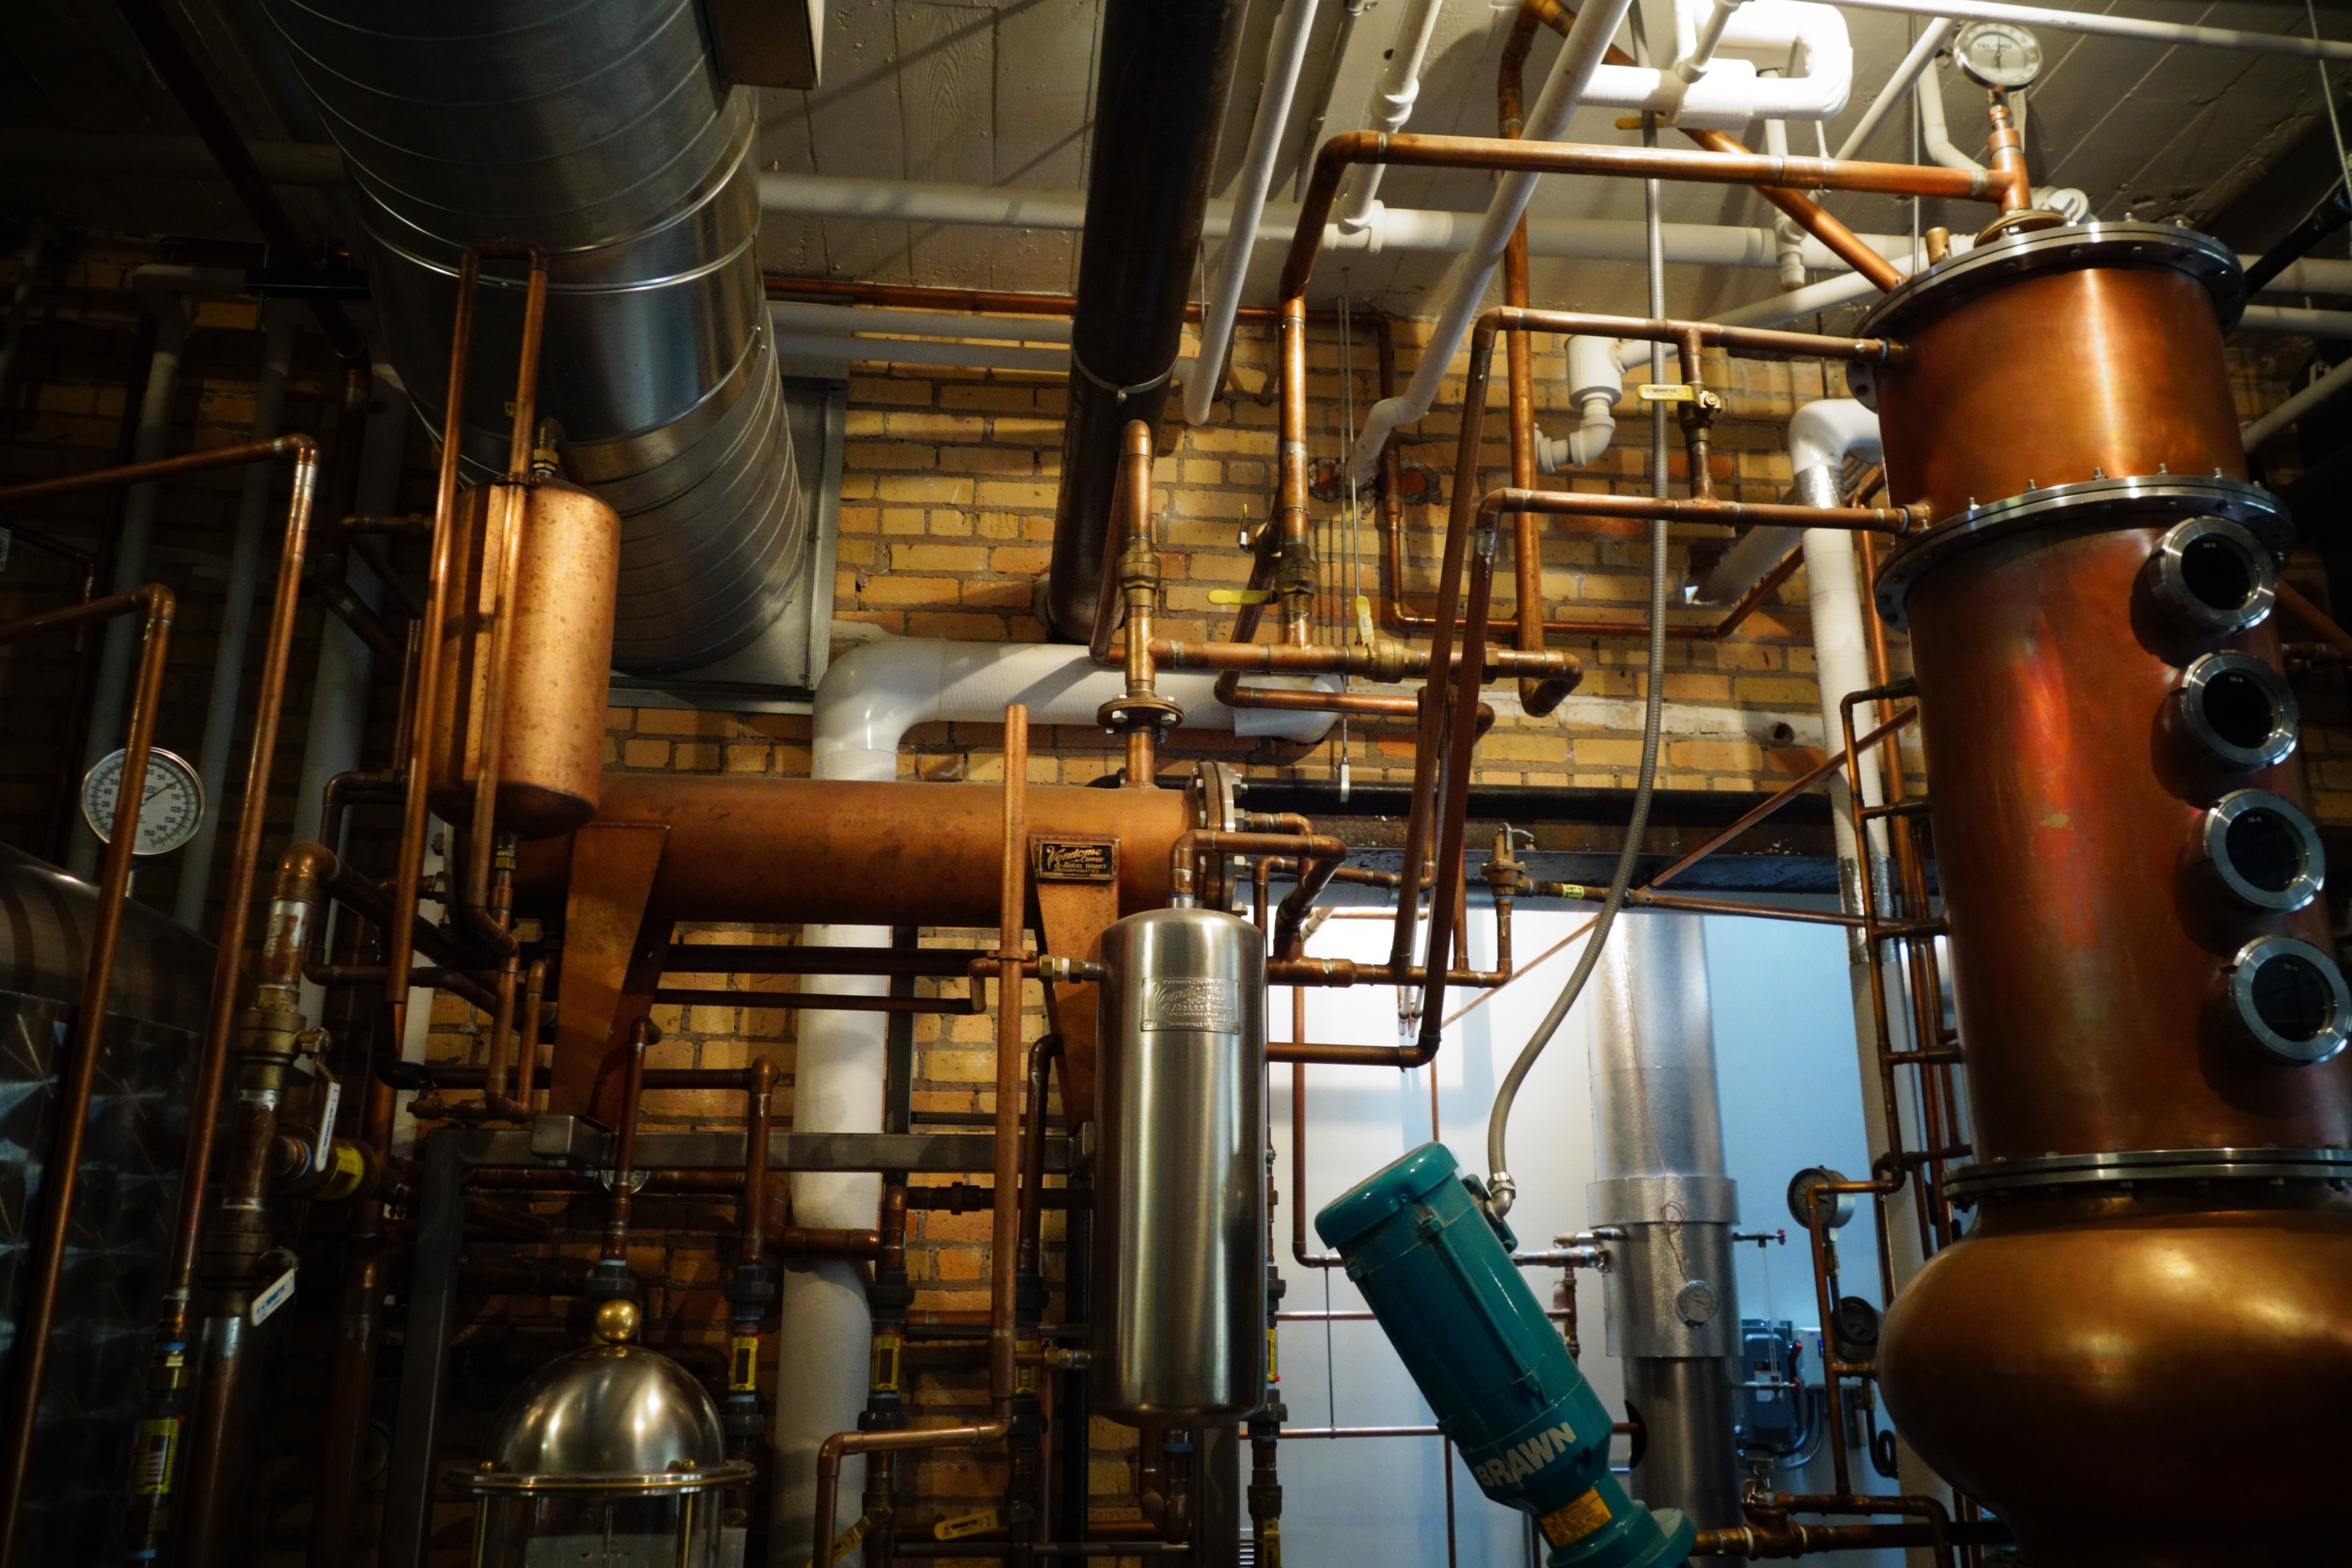 condensers on the still